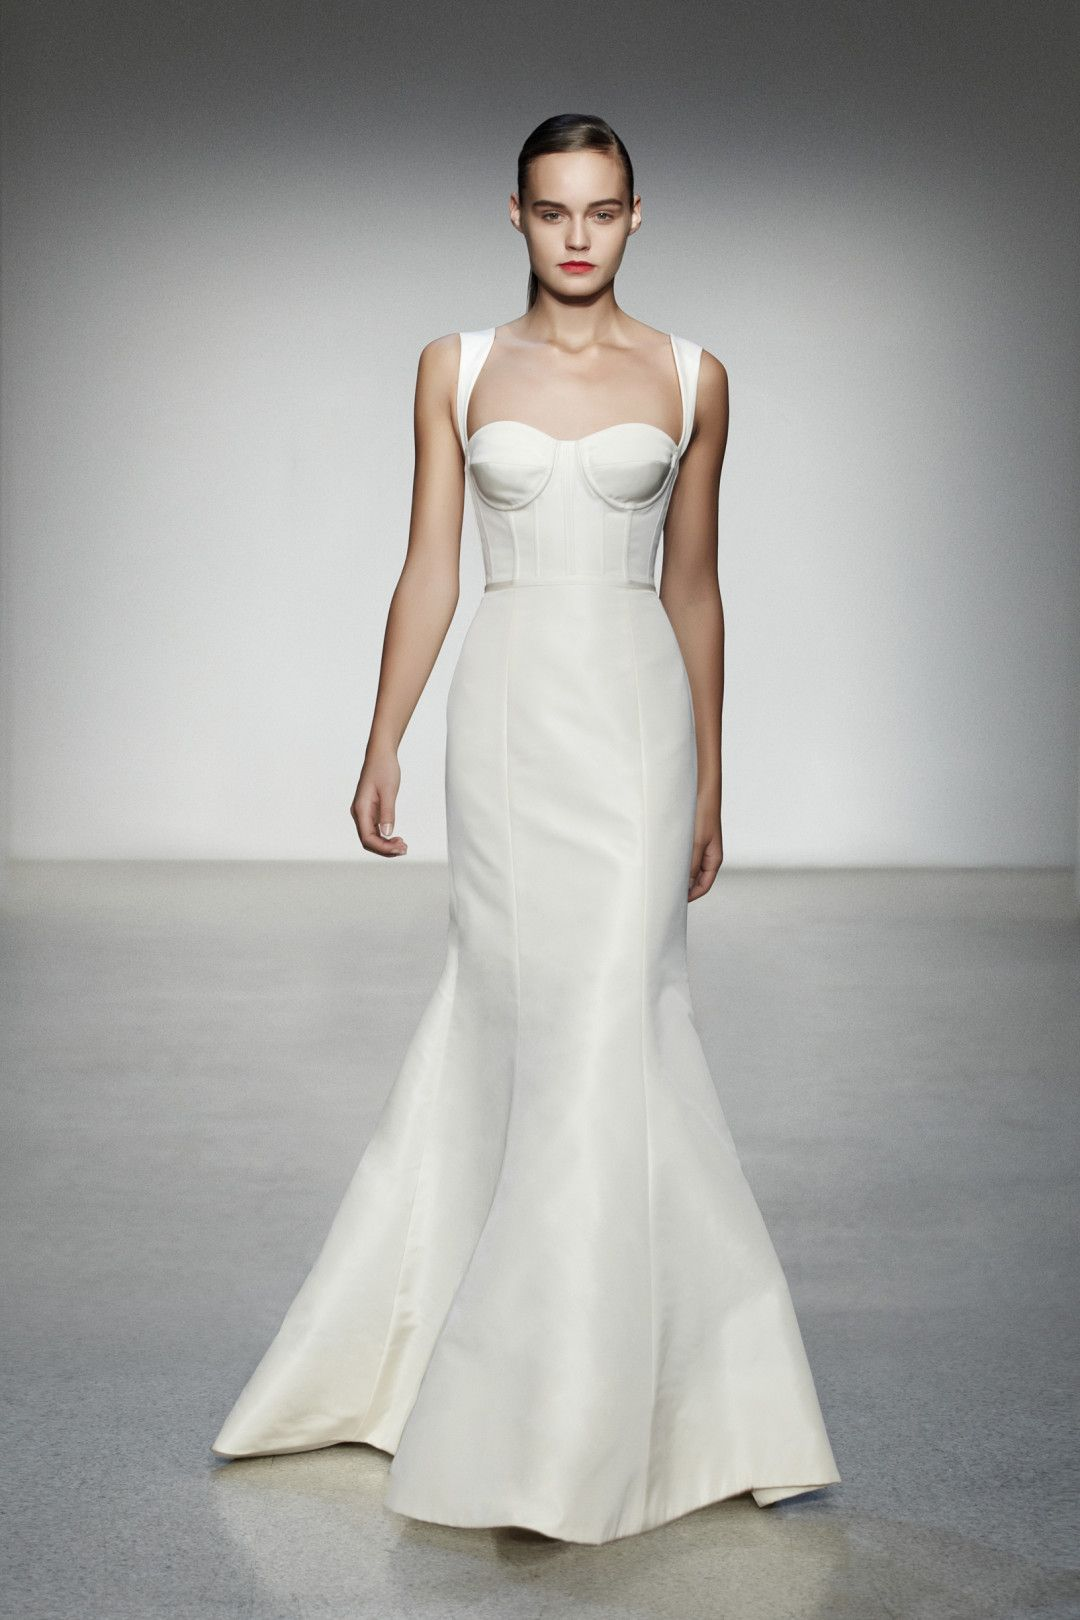 Priscilla of boston wedding dresses  nolita  One day  Pinterest